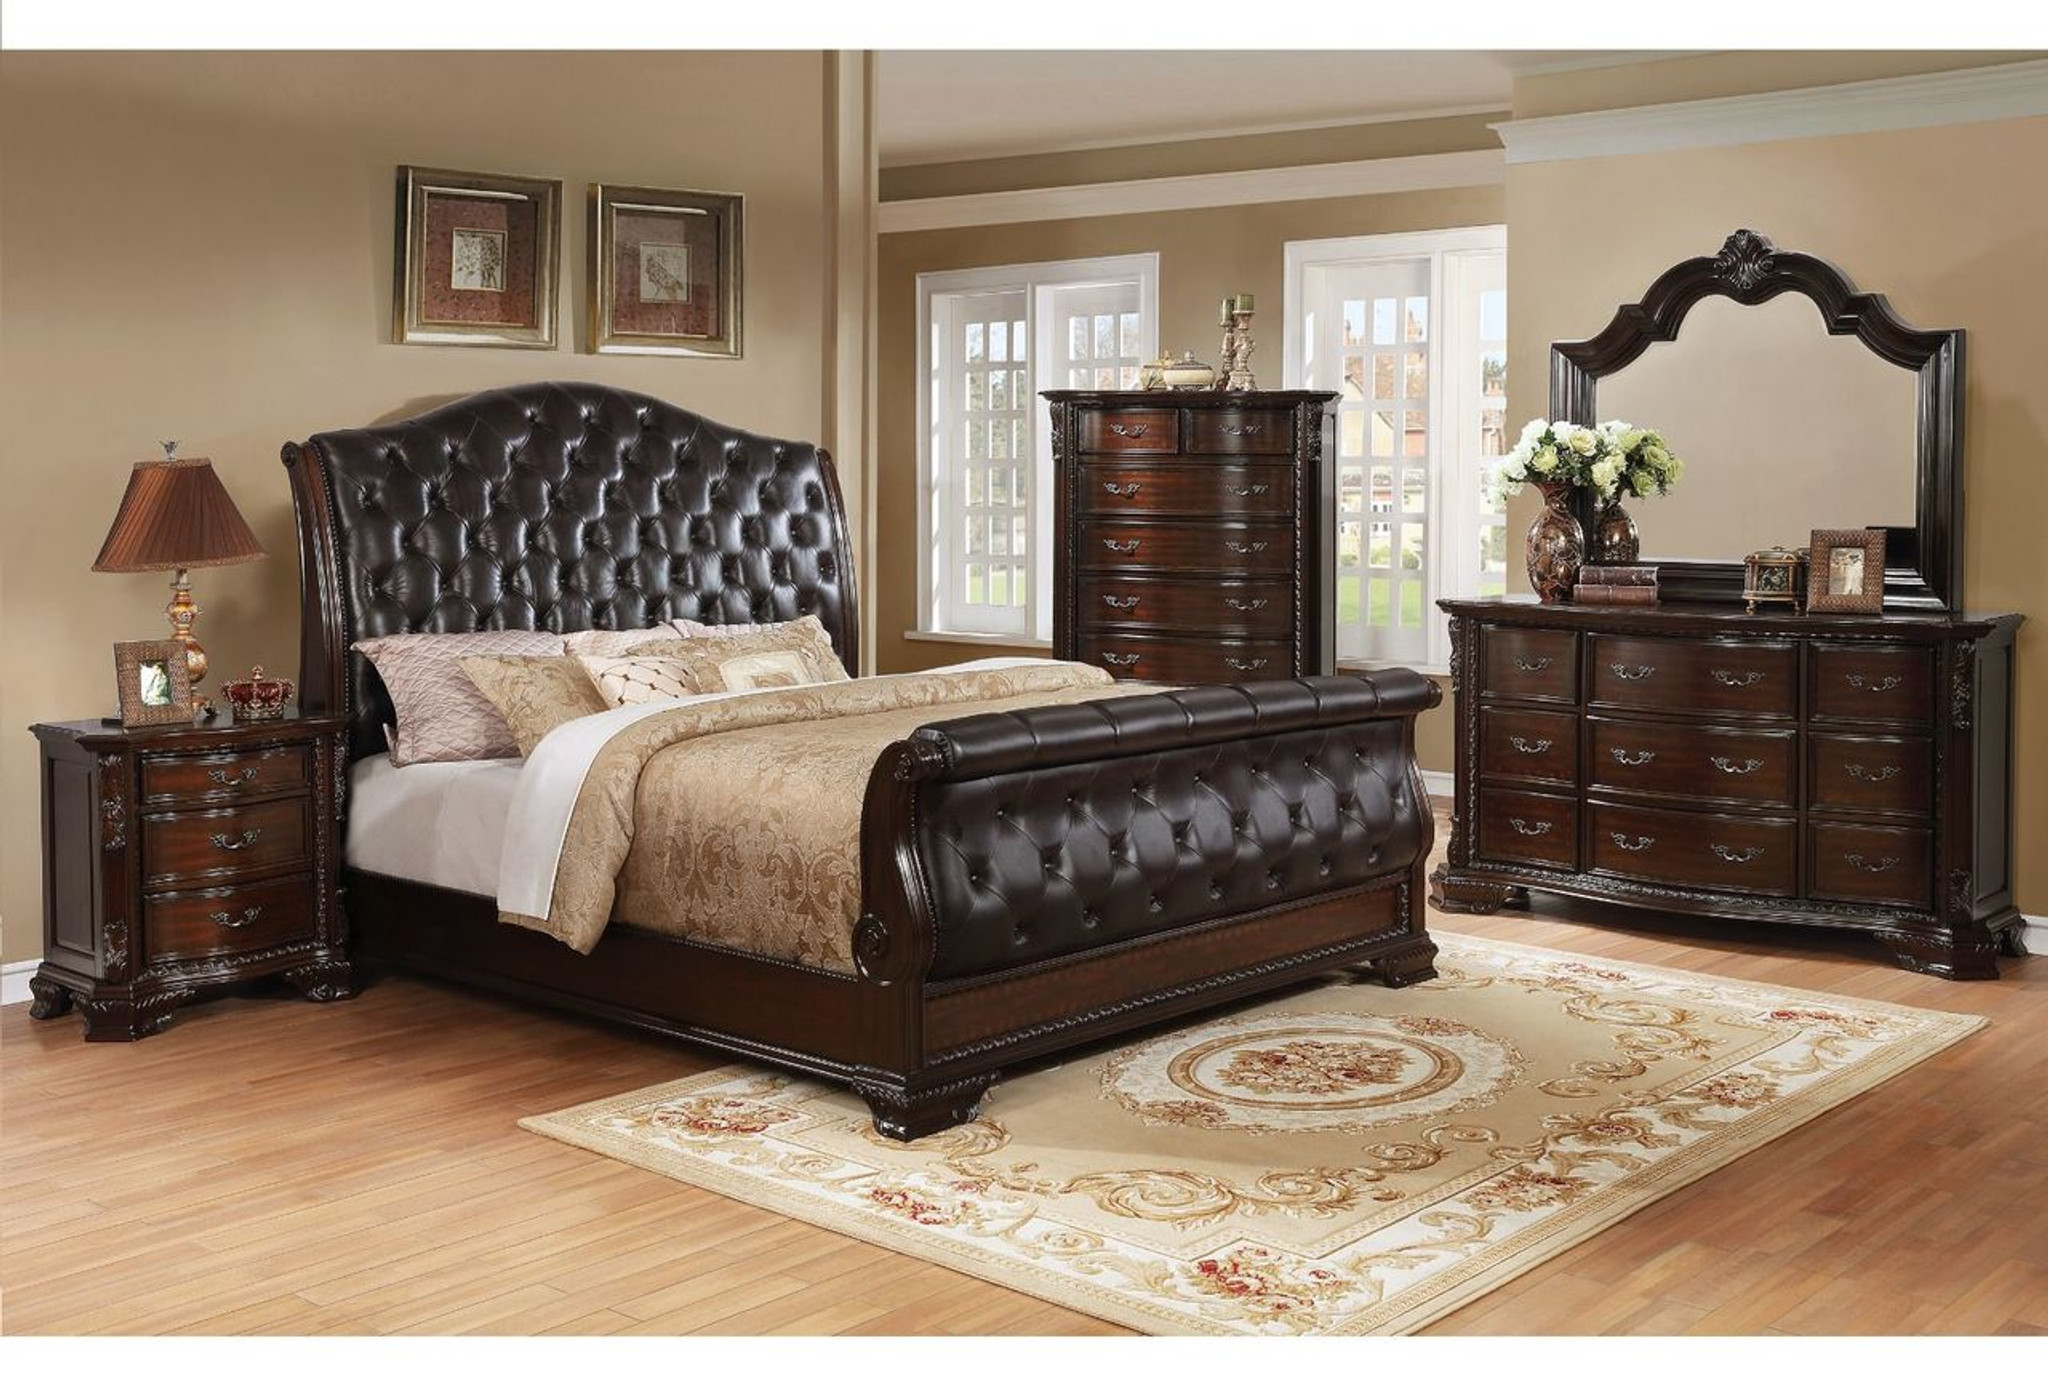 B1100 88 6 Pcs Sheffield Sleigh Bedroom Set By Crown Mark